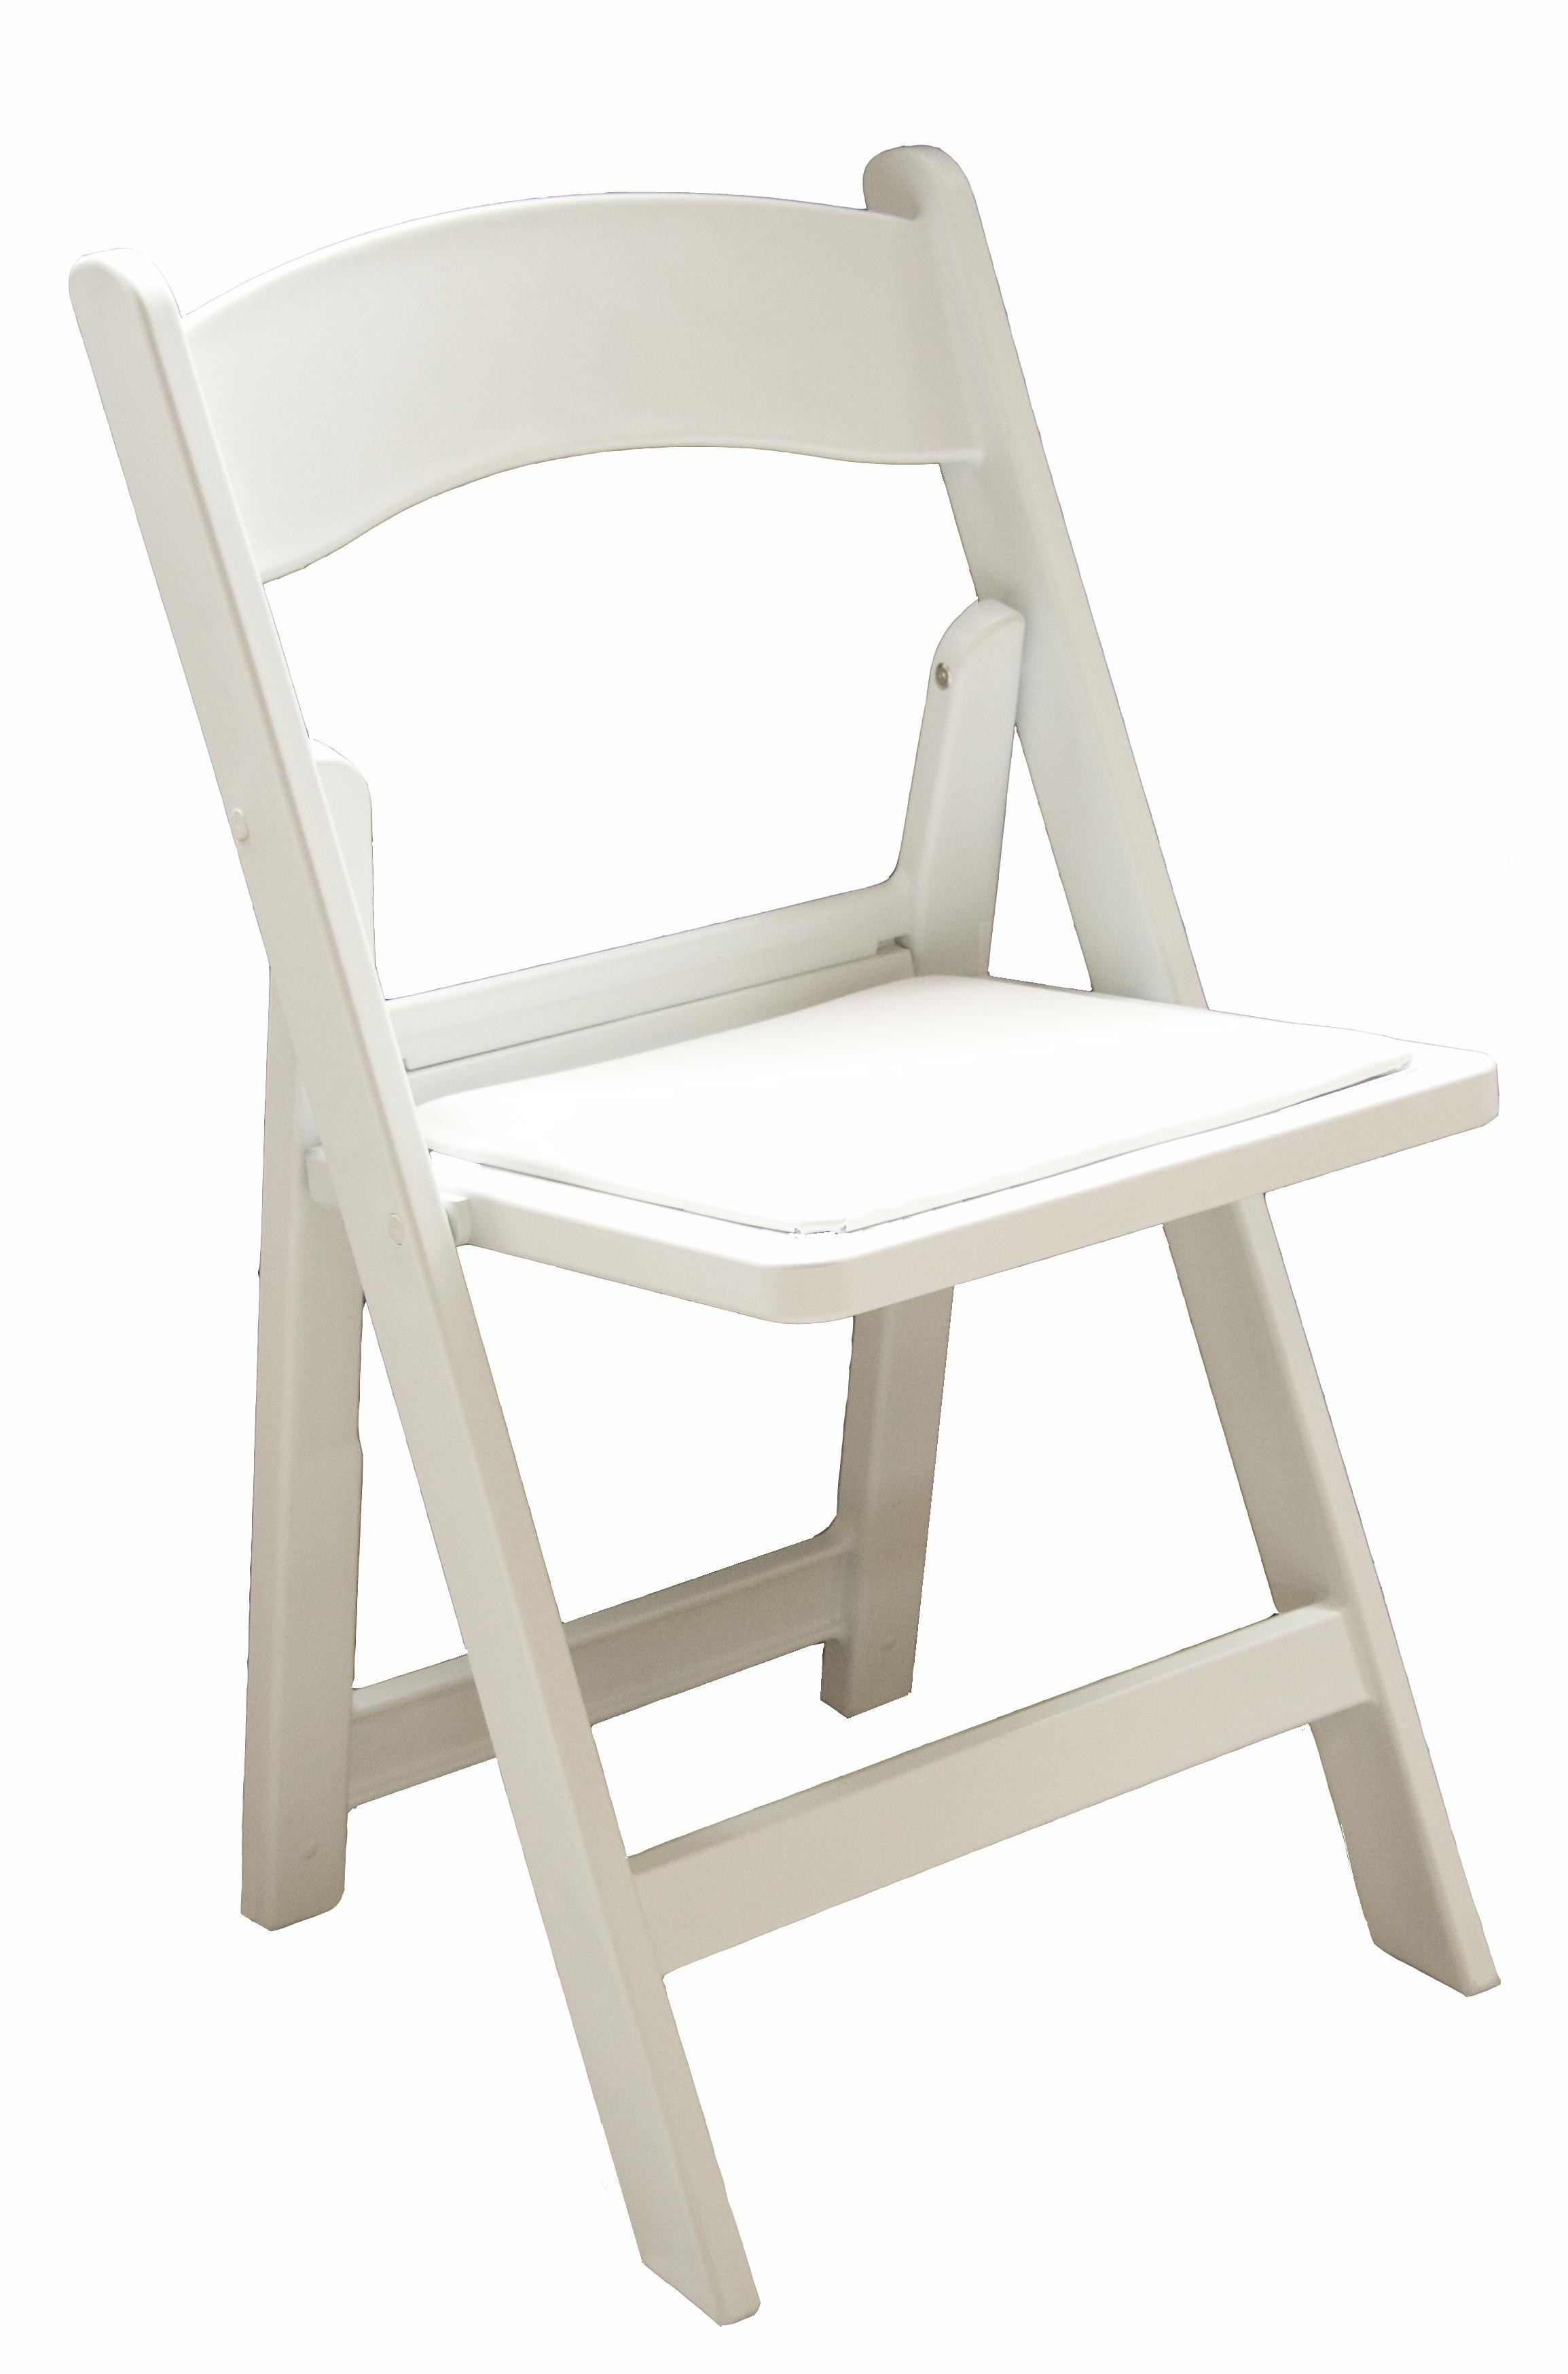 wedding chair klapstoel wit leren zitting Party en